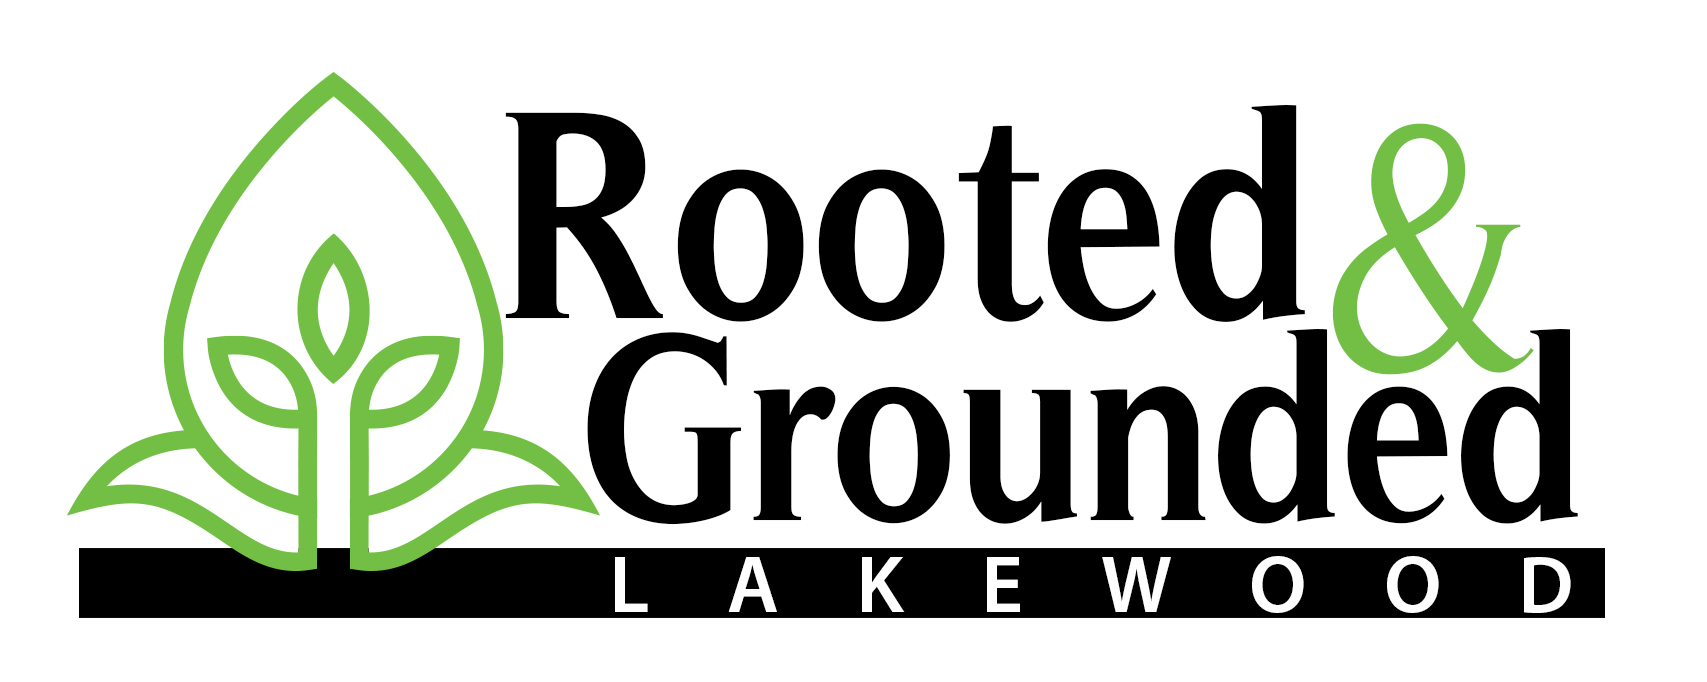 Rooted and Grounded Primary Logo.jpeg